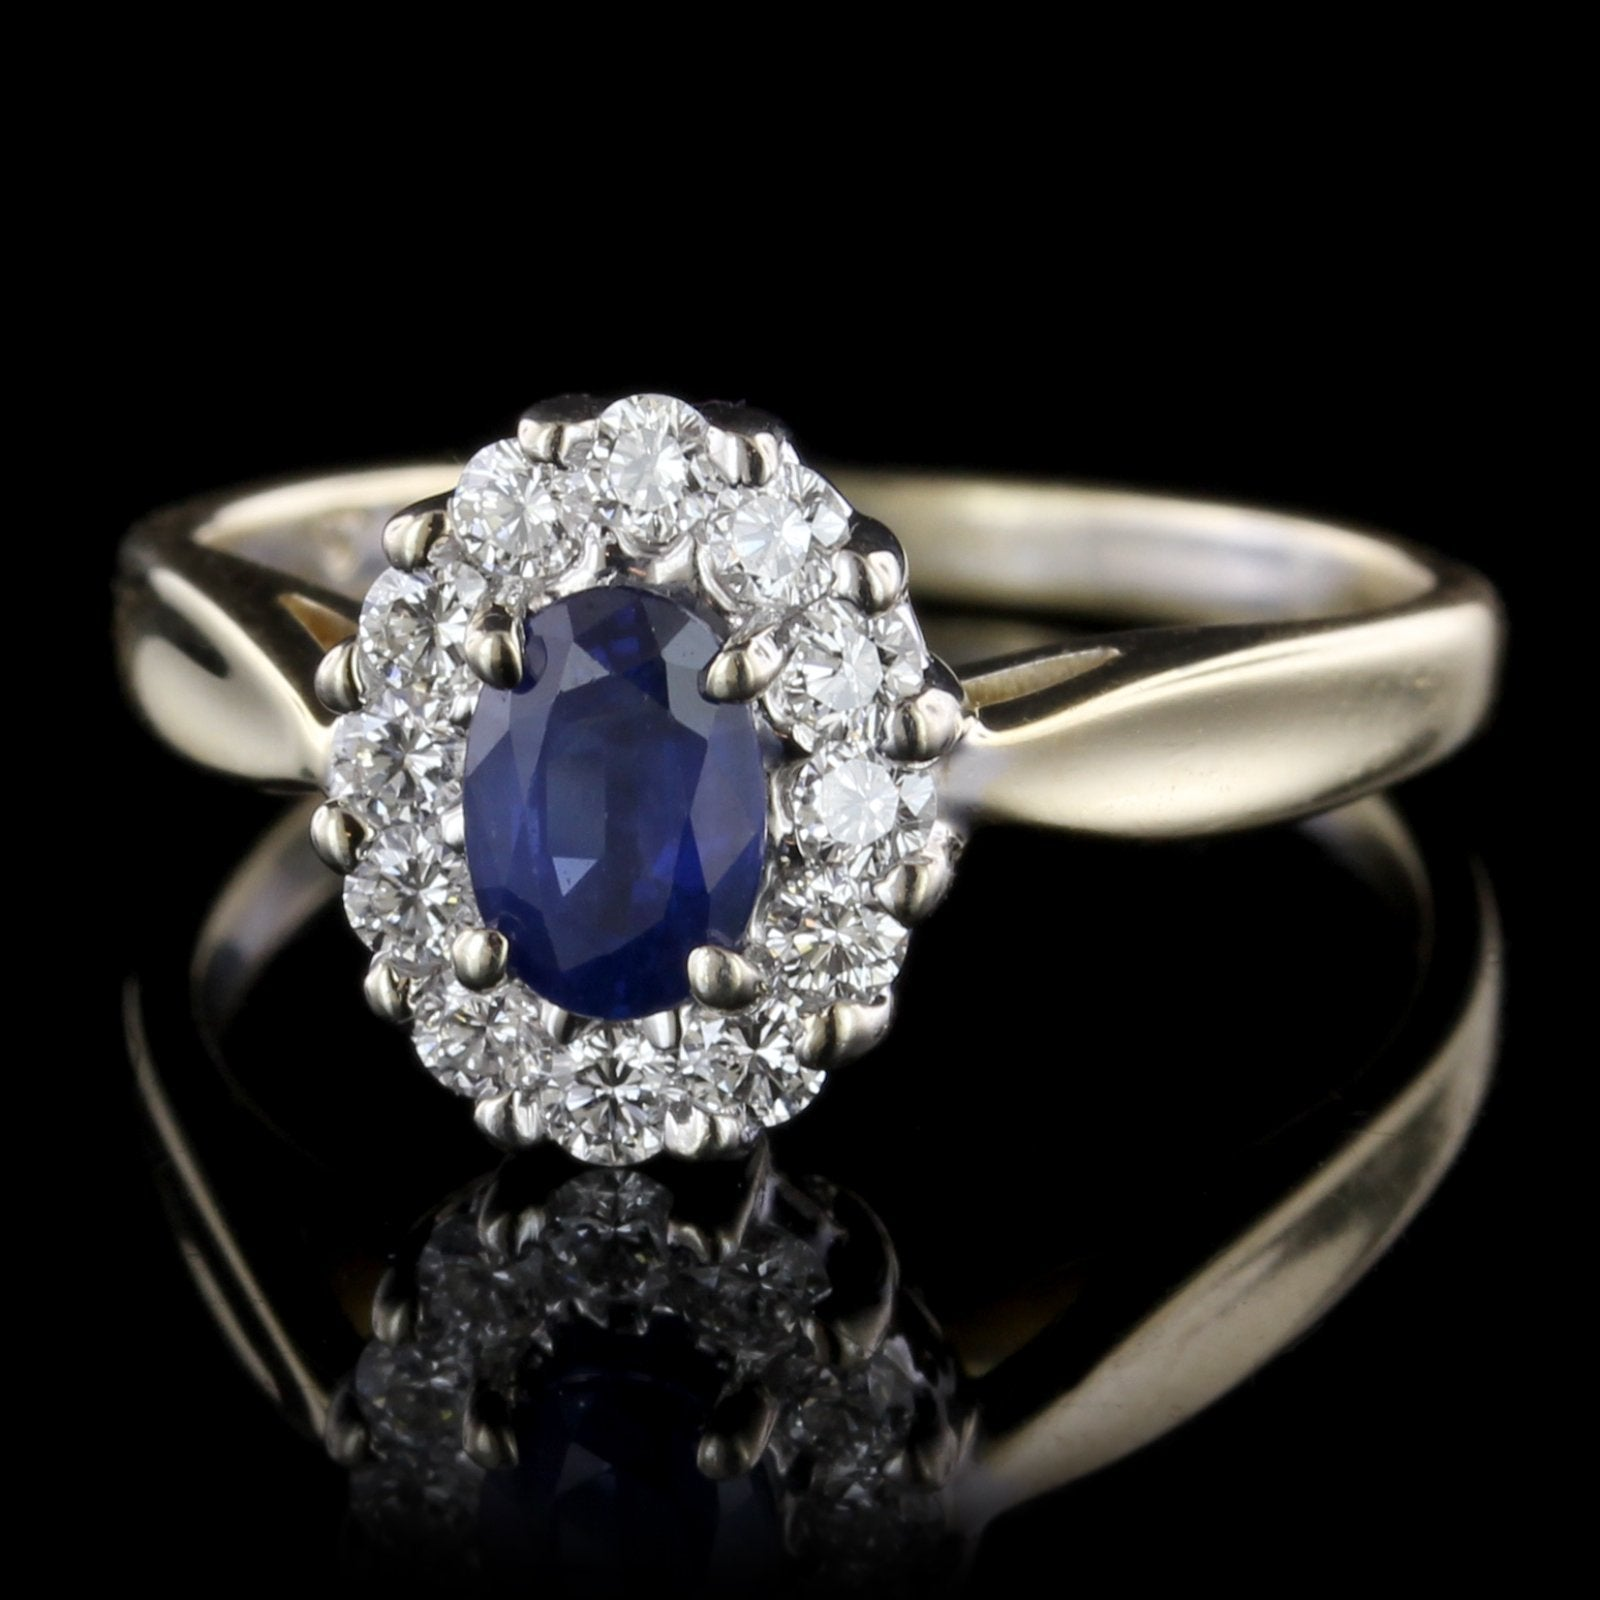 14K Two-Tone Gold Estate Sapphire and Diamond Ring